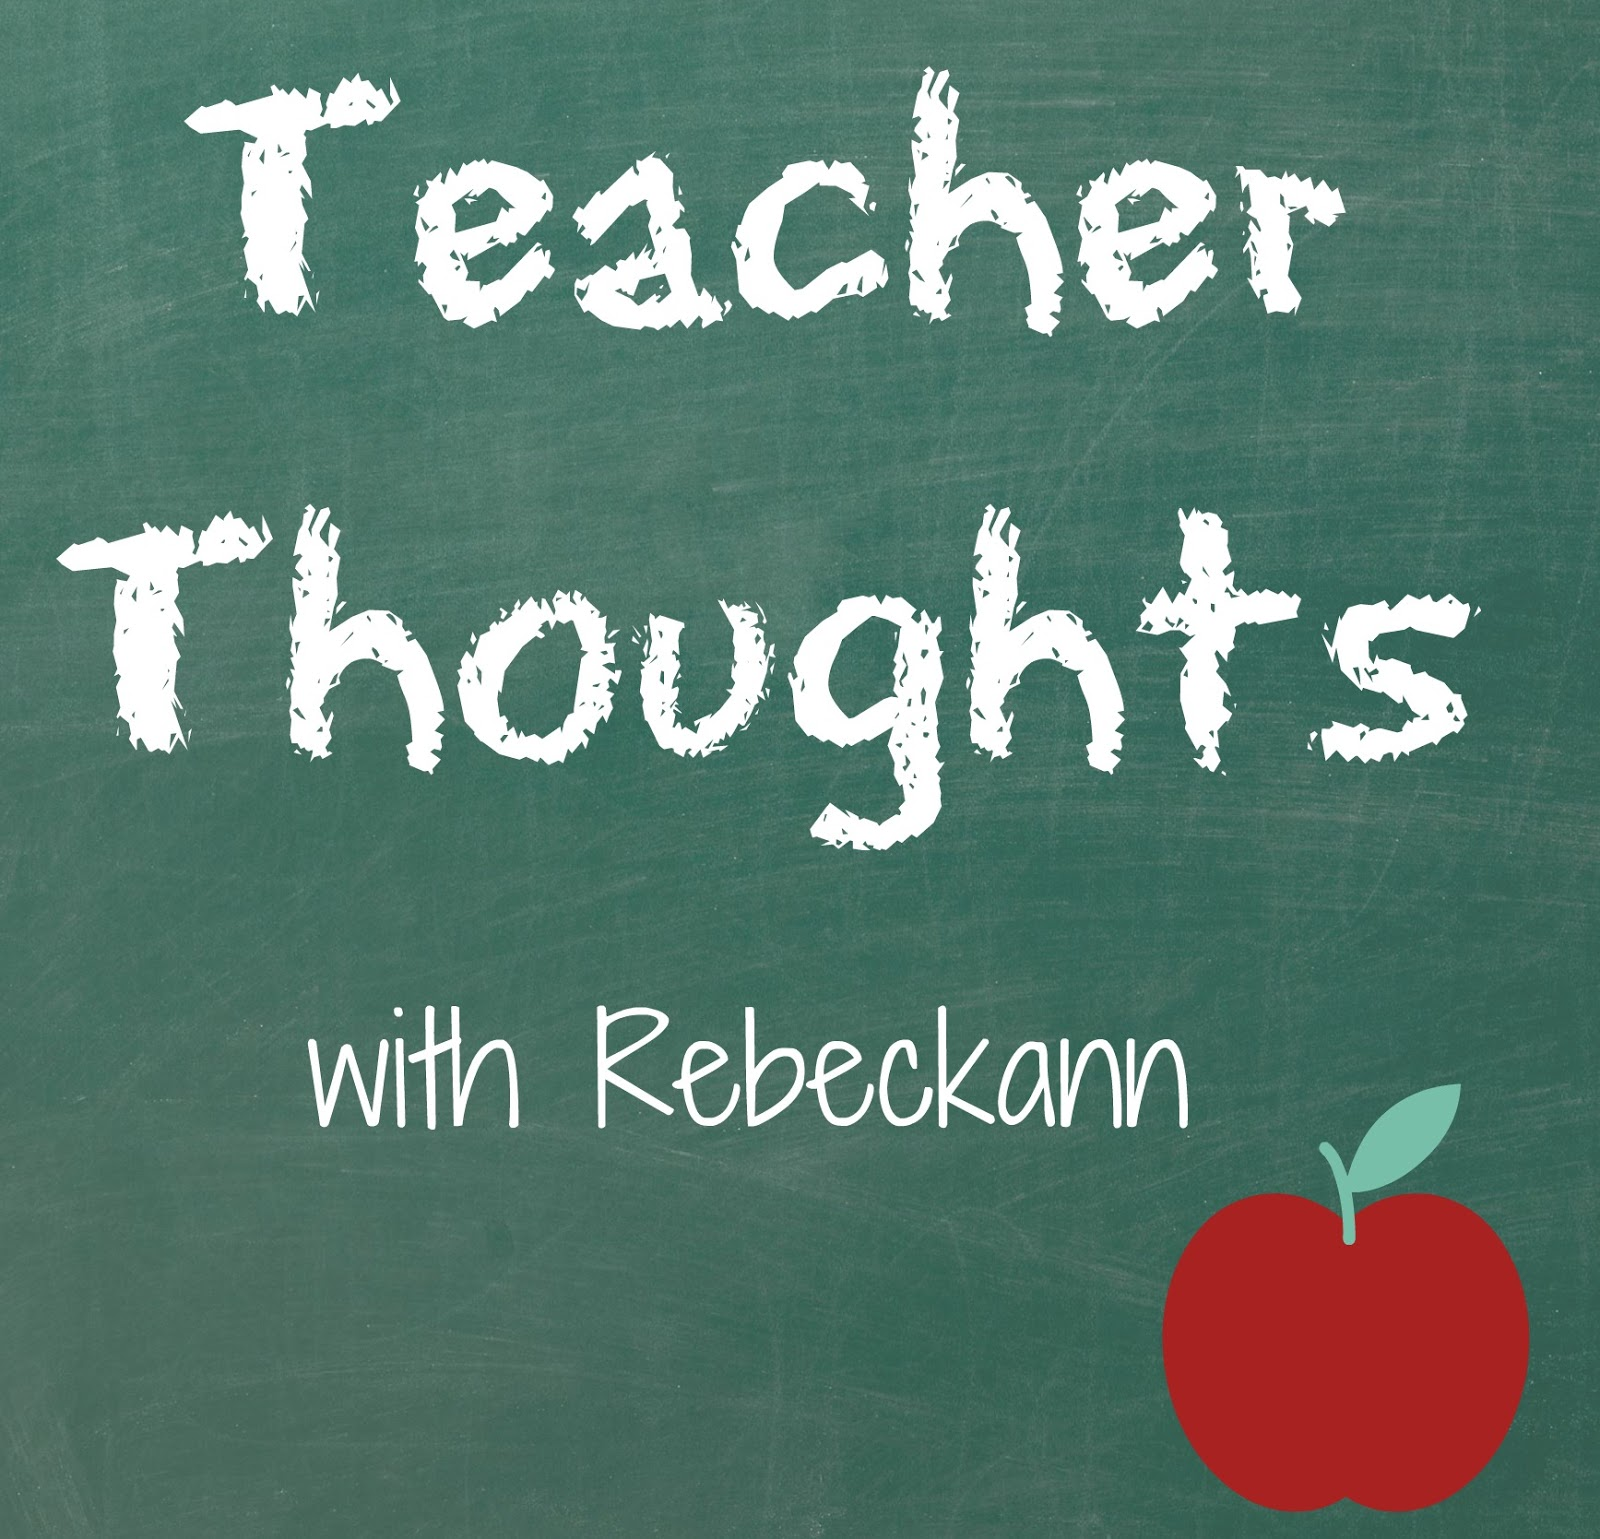 Thoughts And Guidelines For Preparing Teachers For School: Rebeckann's Random Thoughts